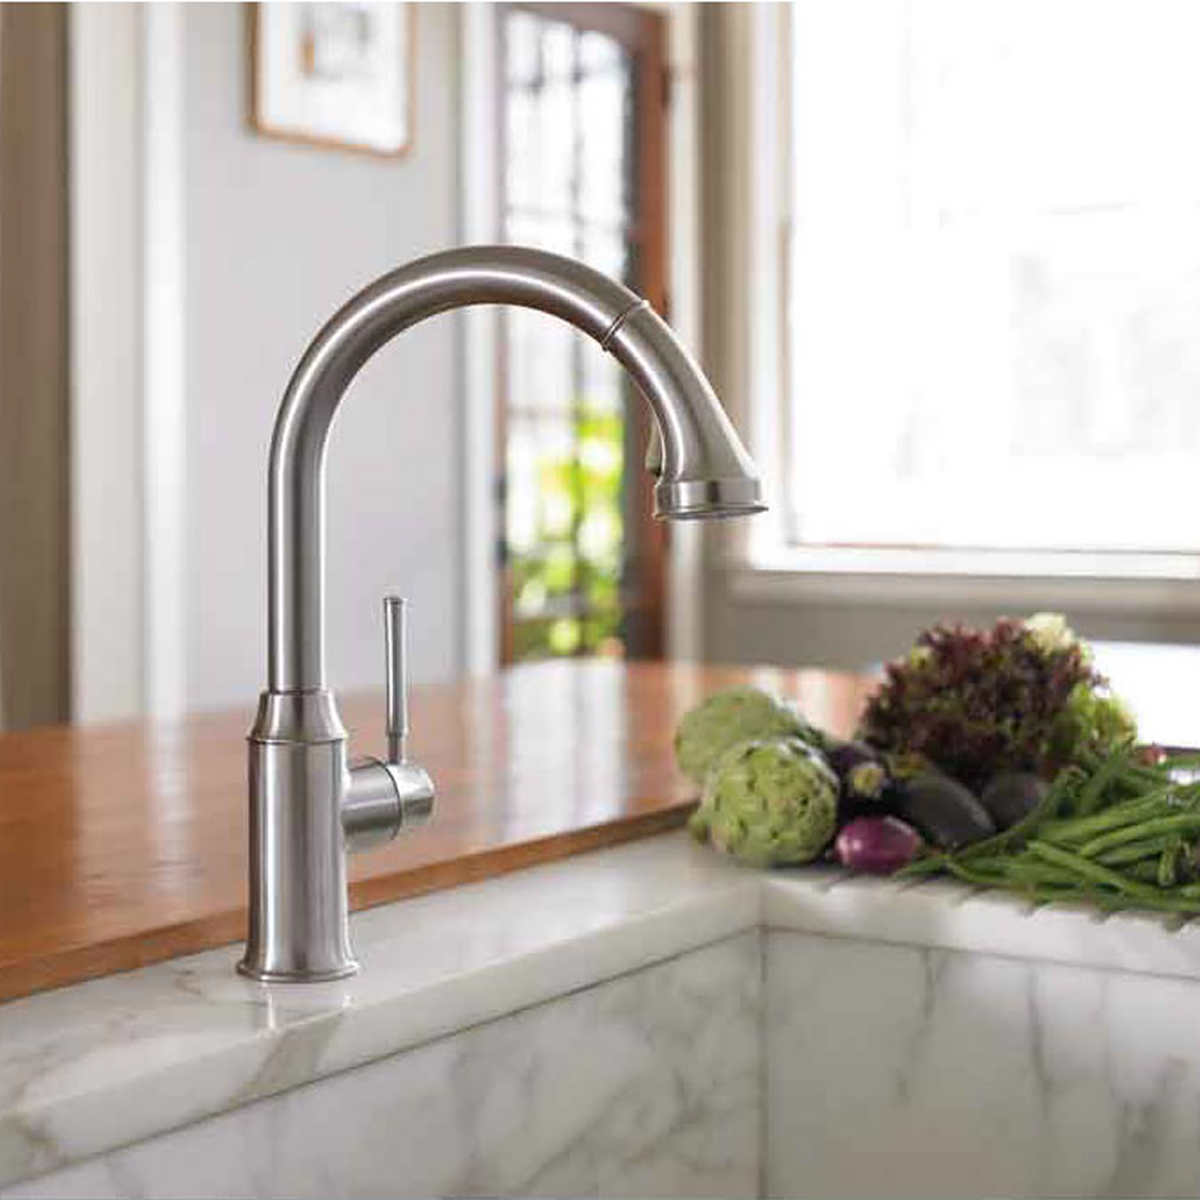 hansgrohe faucets | costco